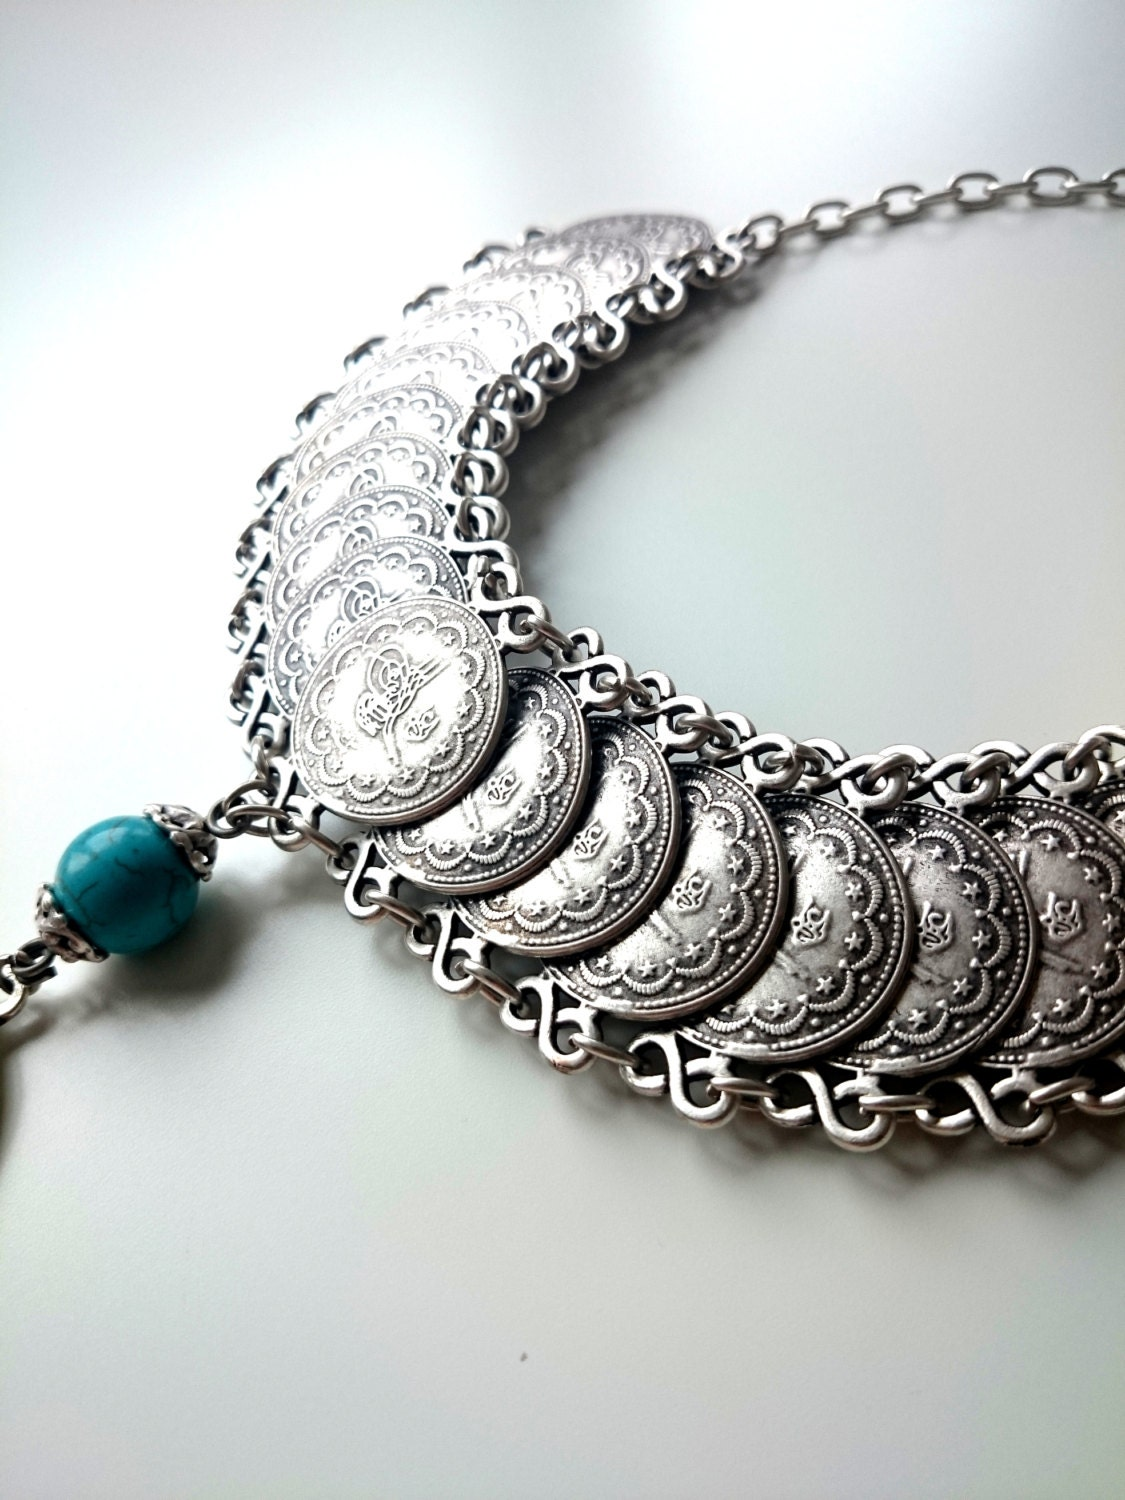 ottoman necklace silver chain turkish jewelry boho